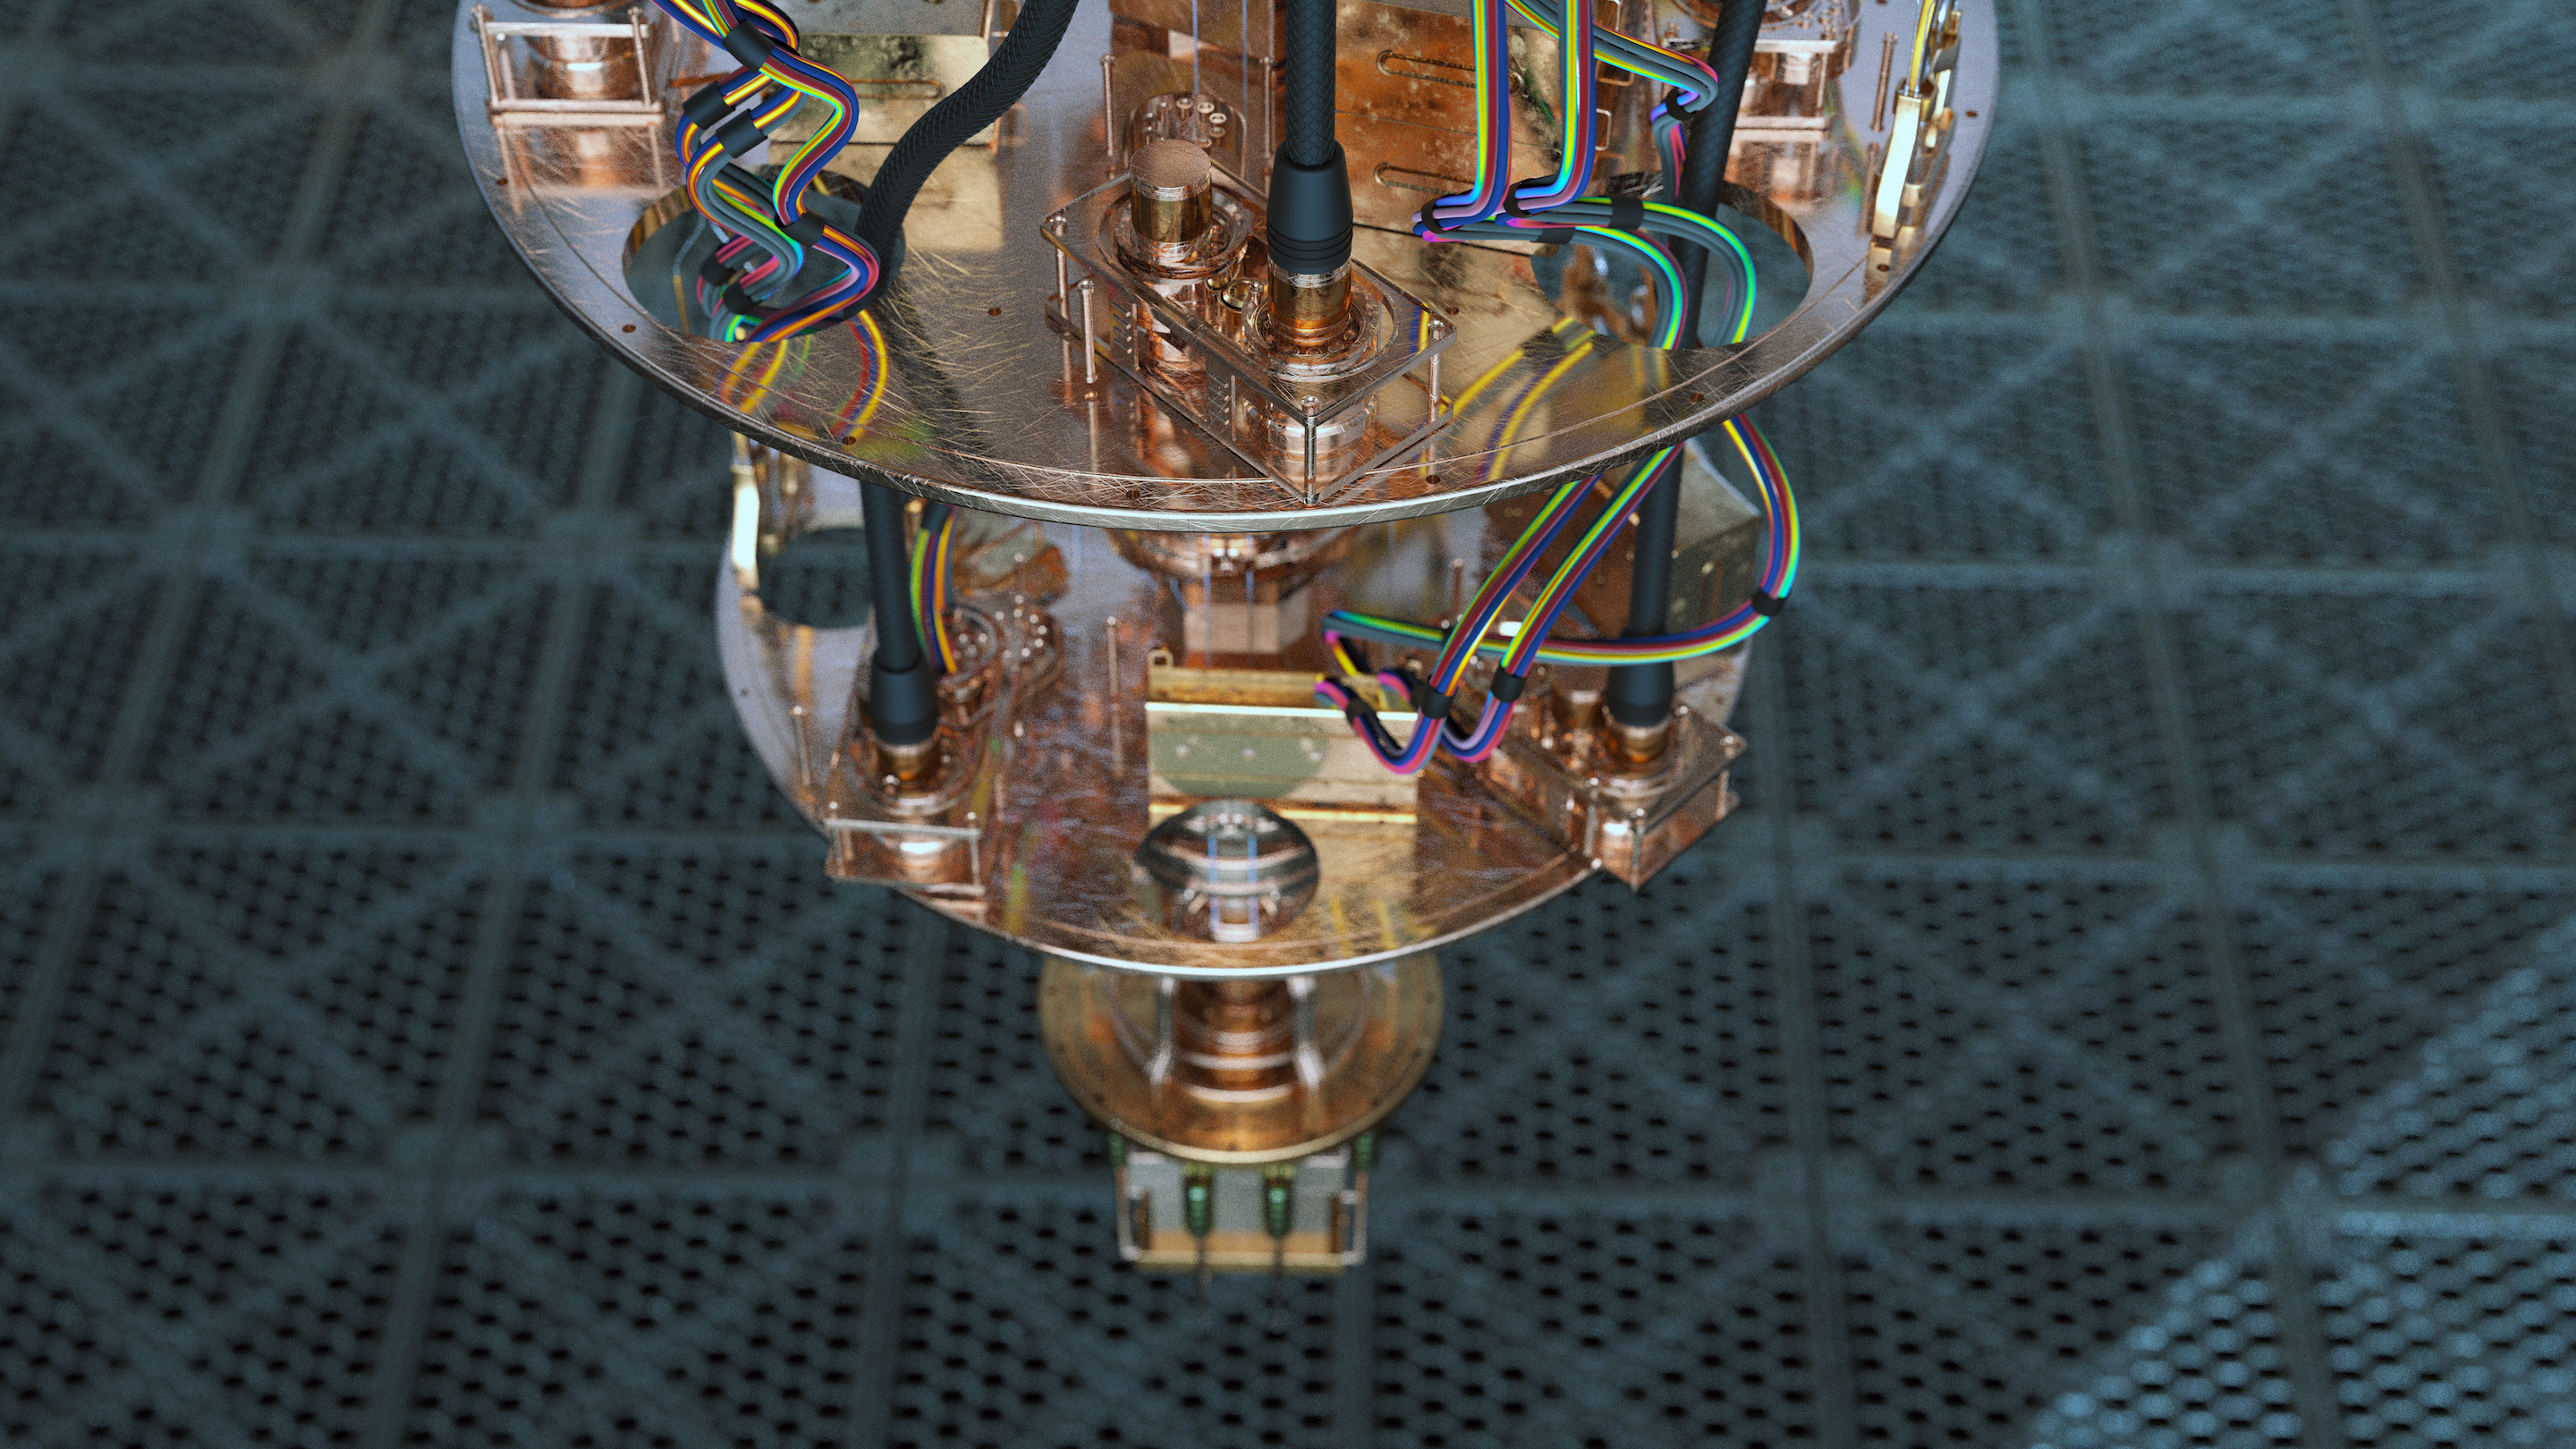 Close view of Quantum Components. In reaching quantum supremacy, Google has achieved a major technological milestone. But a golden age of quantum computing is not here yet.